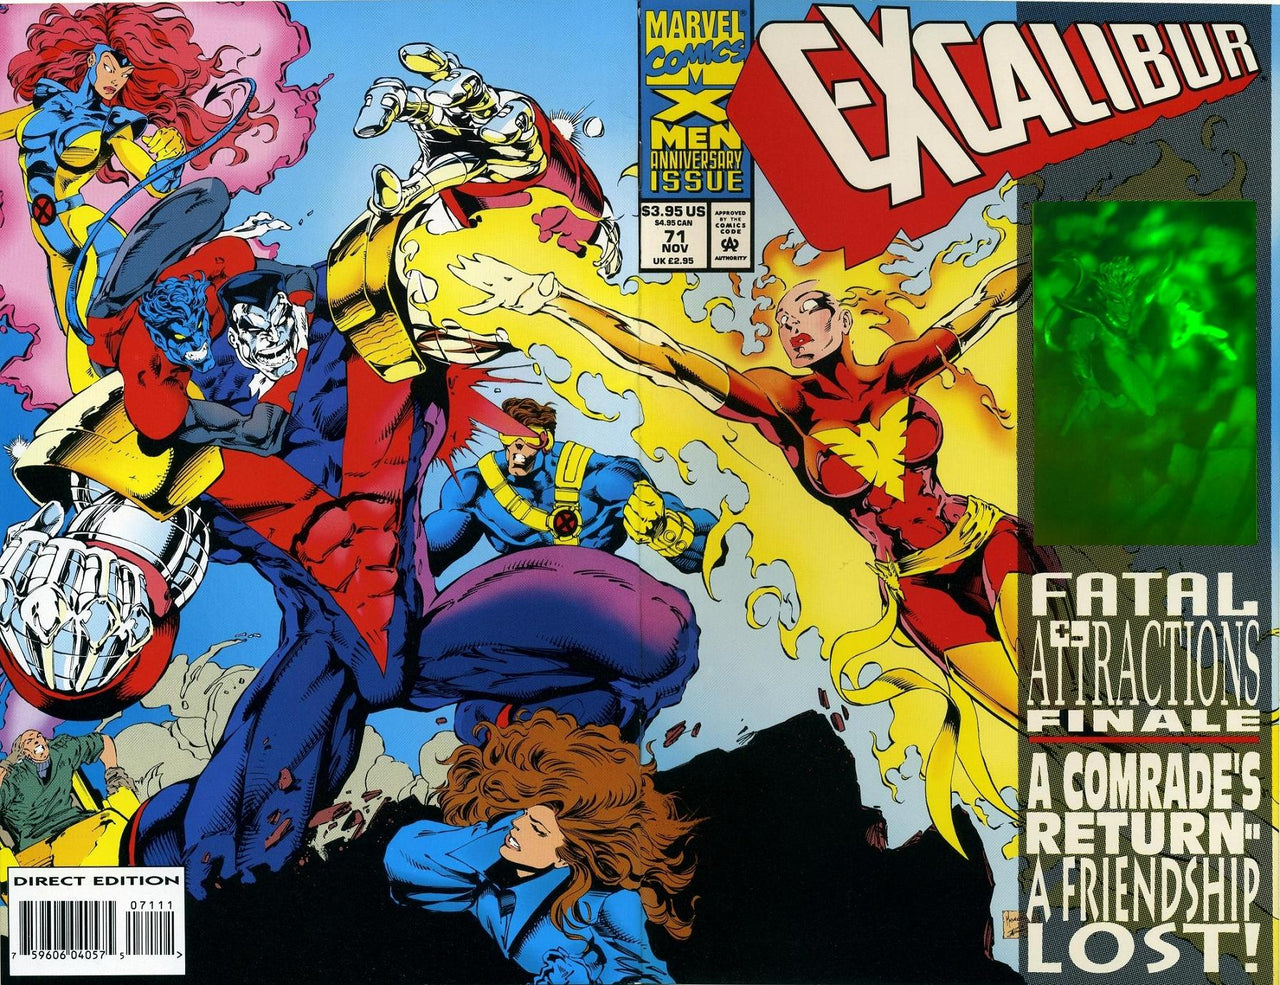 Excalibur issue #71 igcomicstore